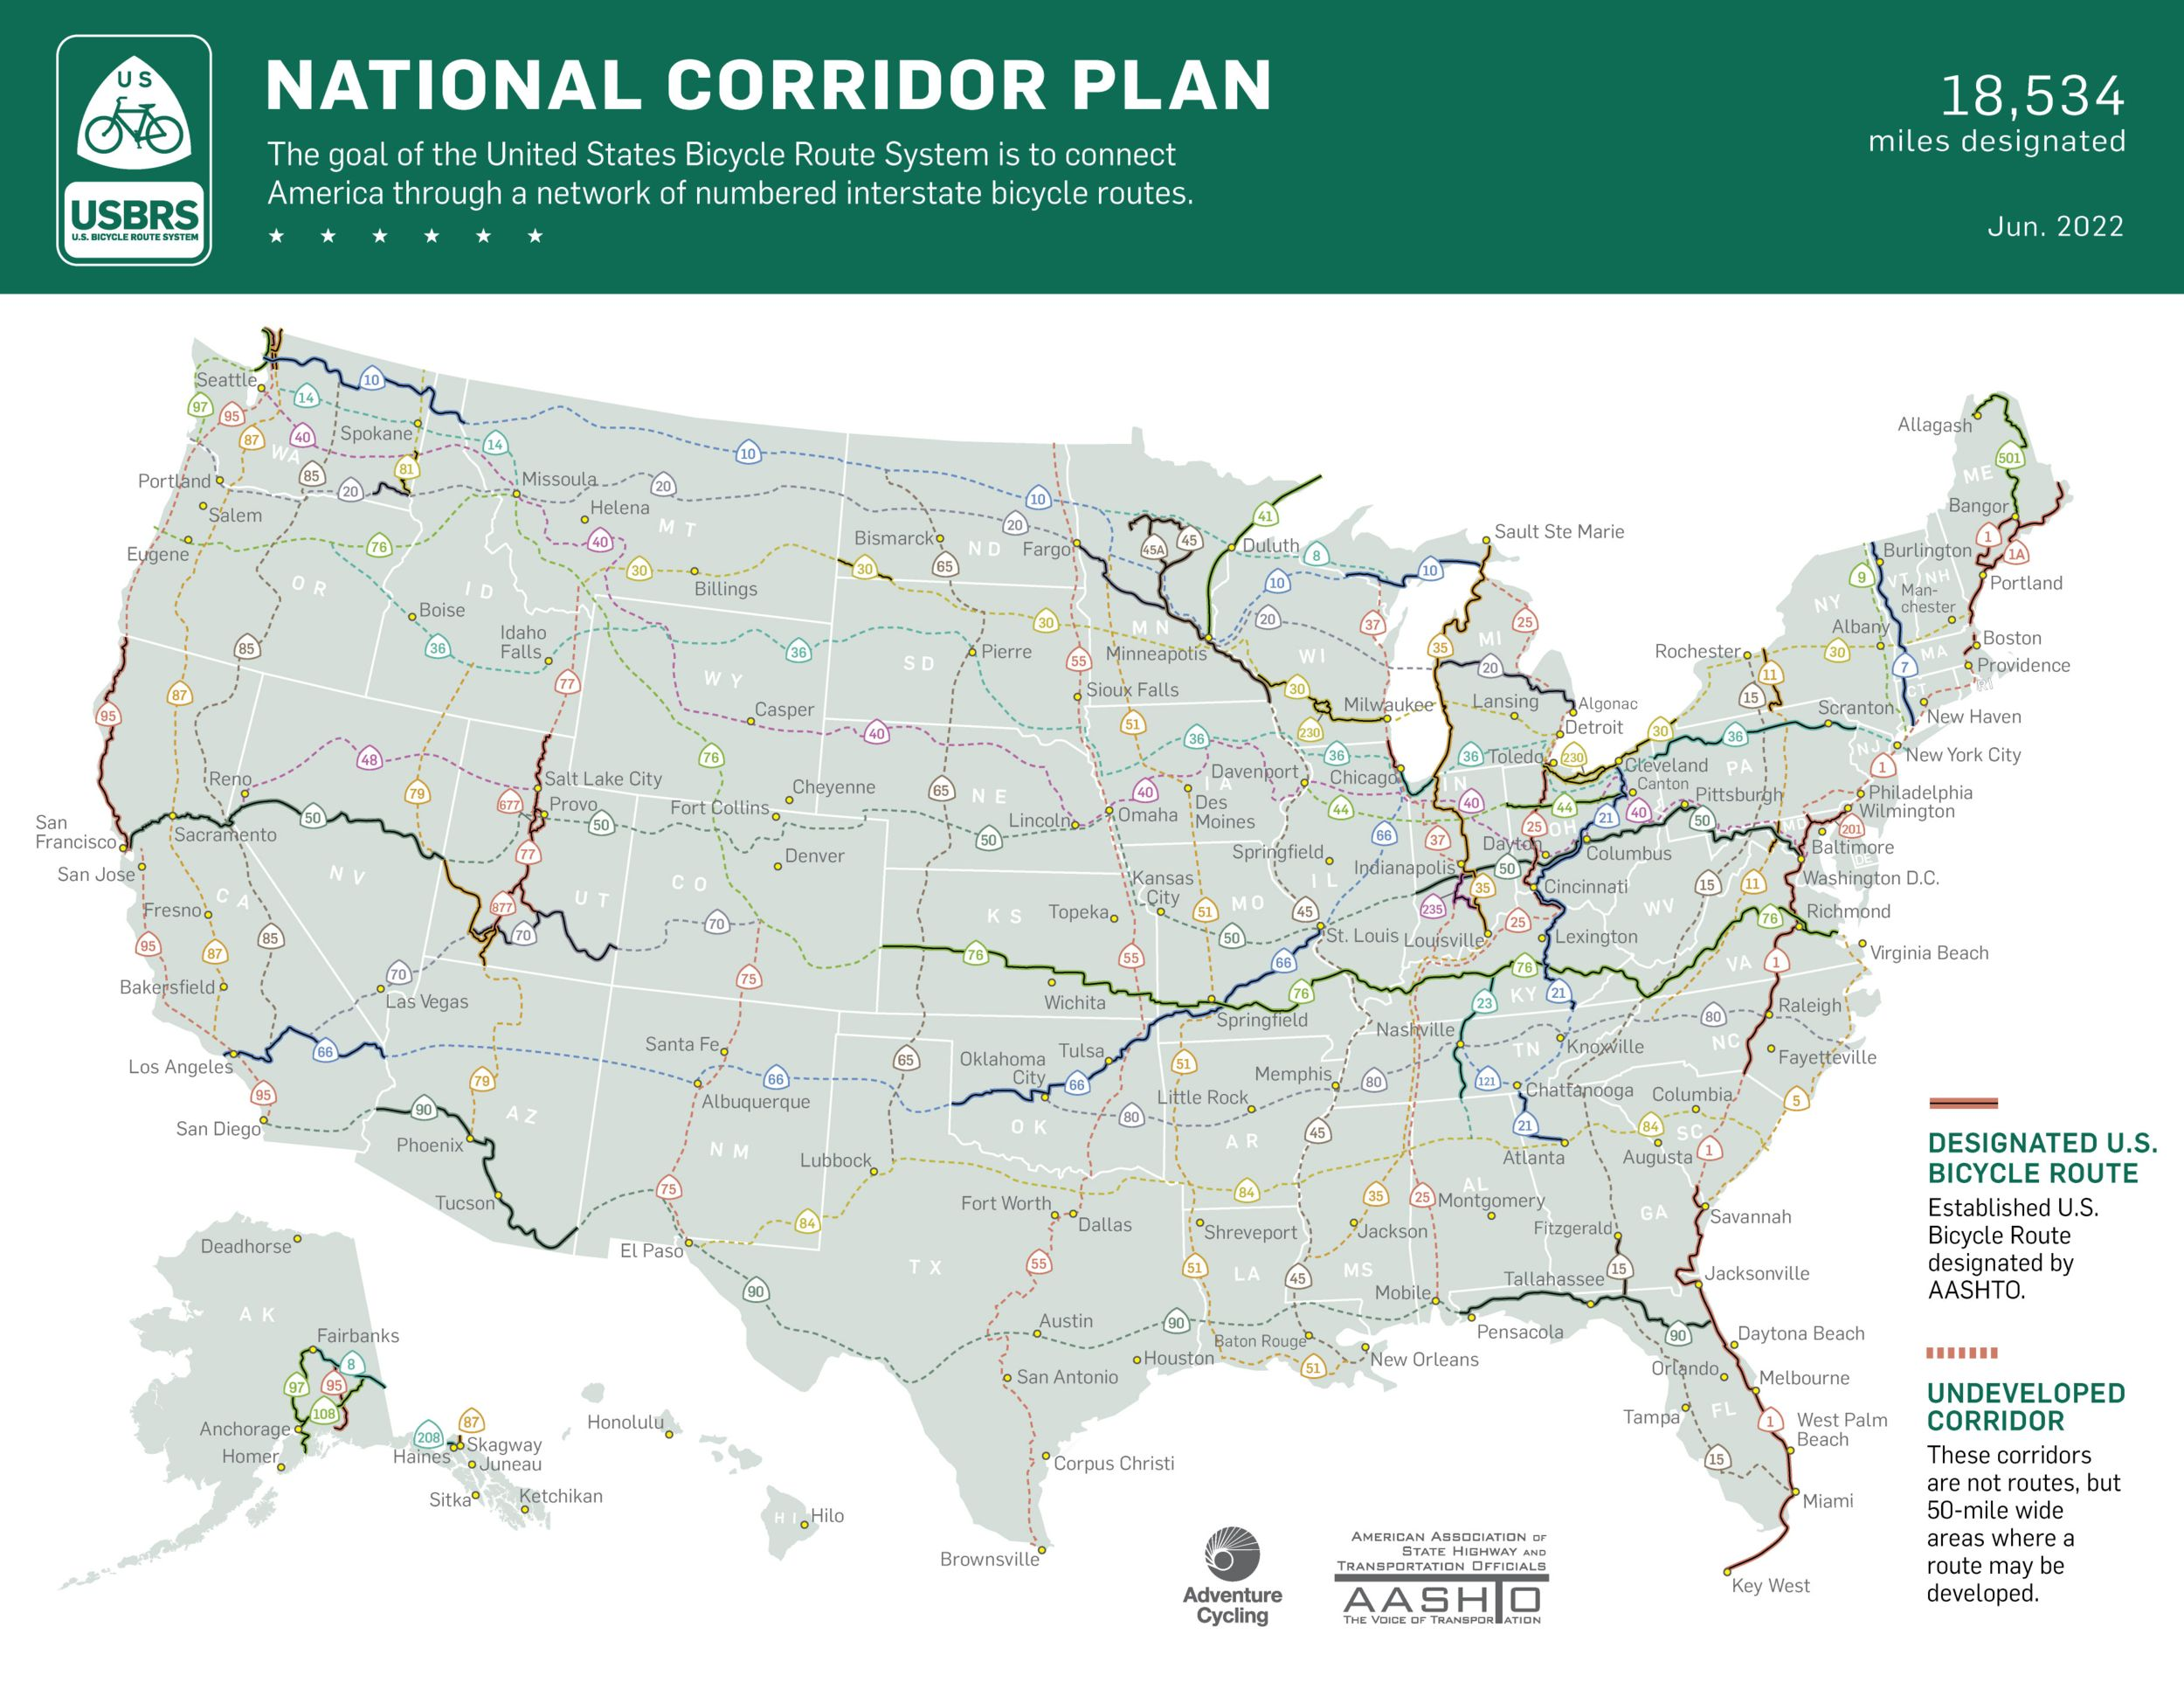 National Corridor Plan US Bicycle Route System Adventure